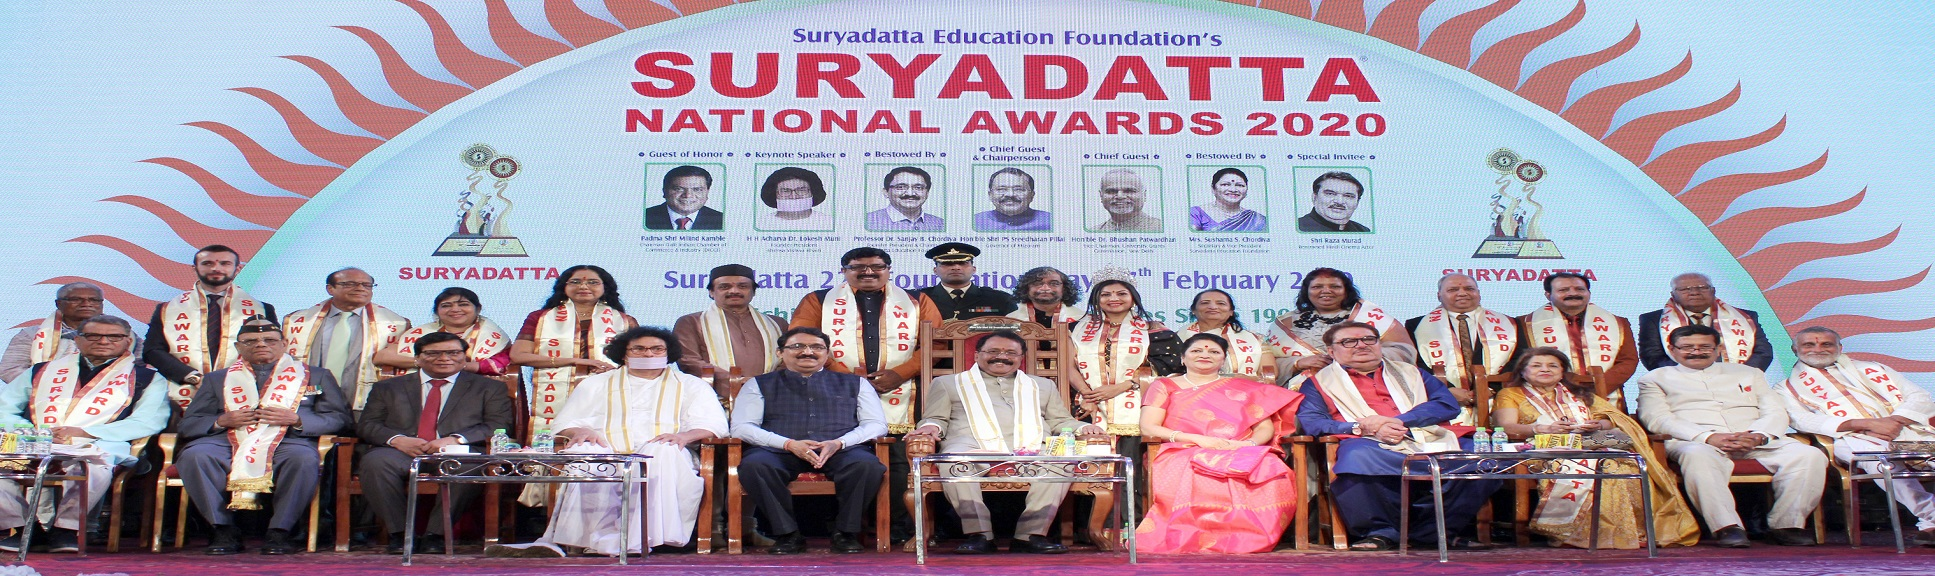 Suryadatta National Awards 2020